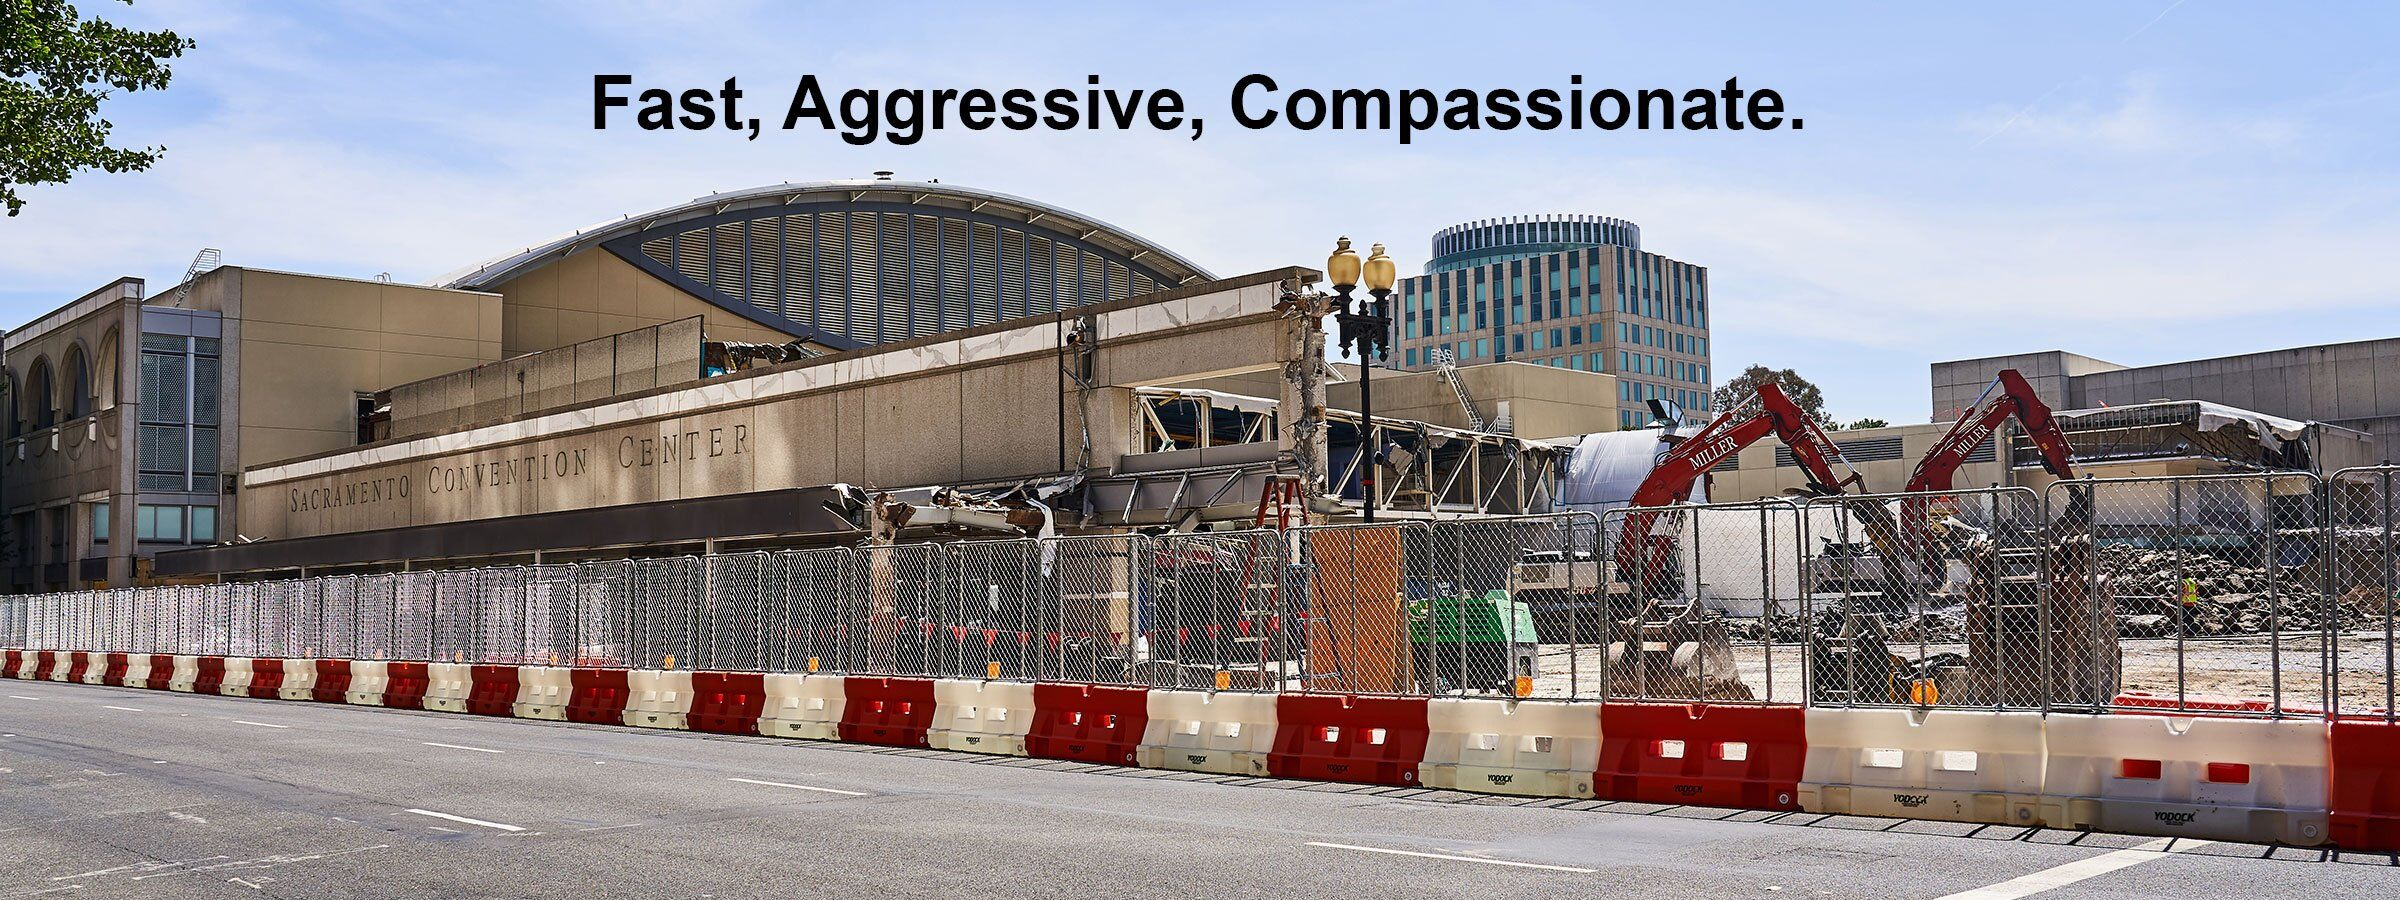 Sacramento Workers' Compensation Attorneys Header Image